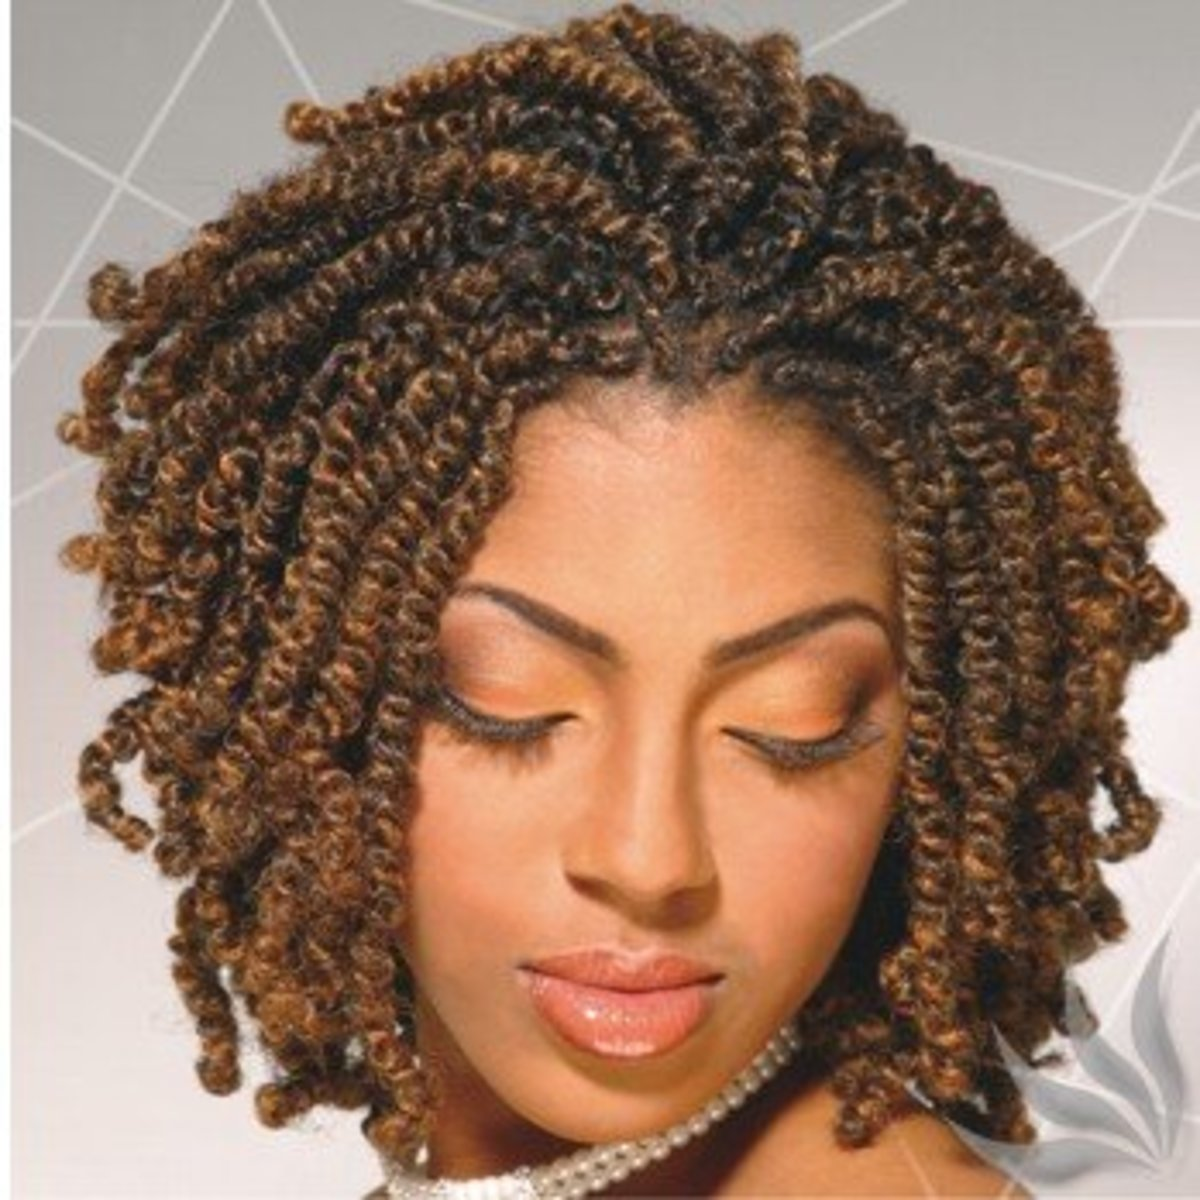 Hairstyles for Natural Black Hair: Twist Out